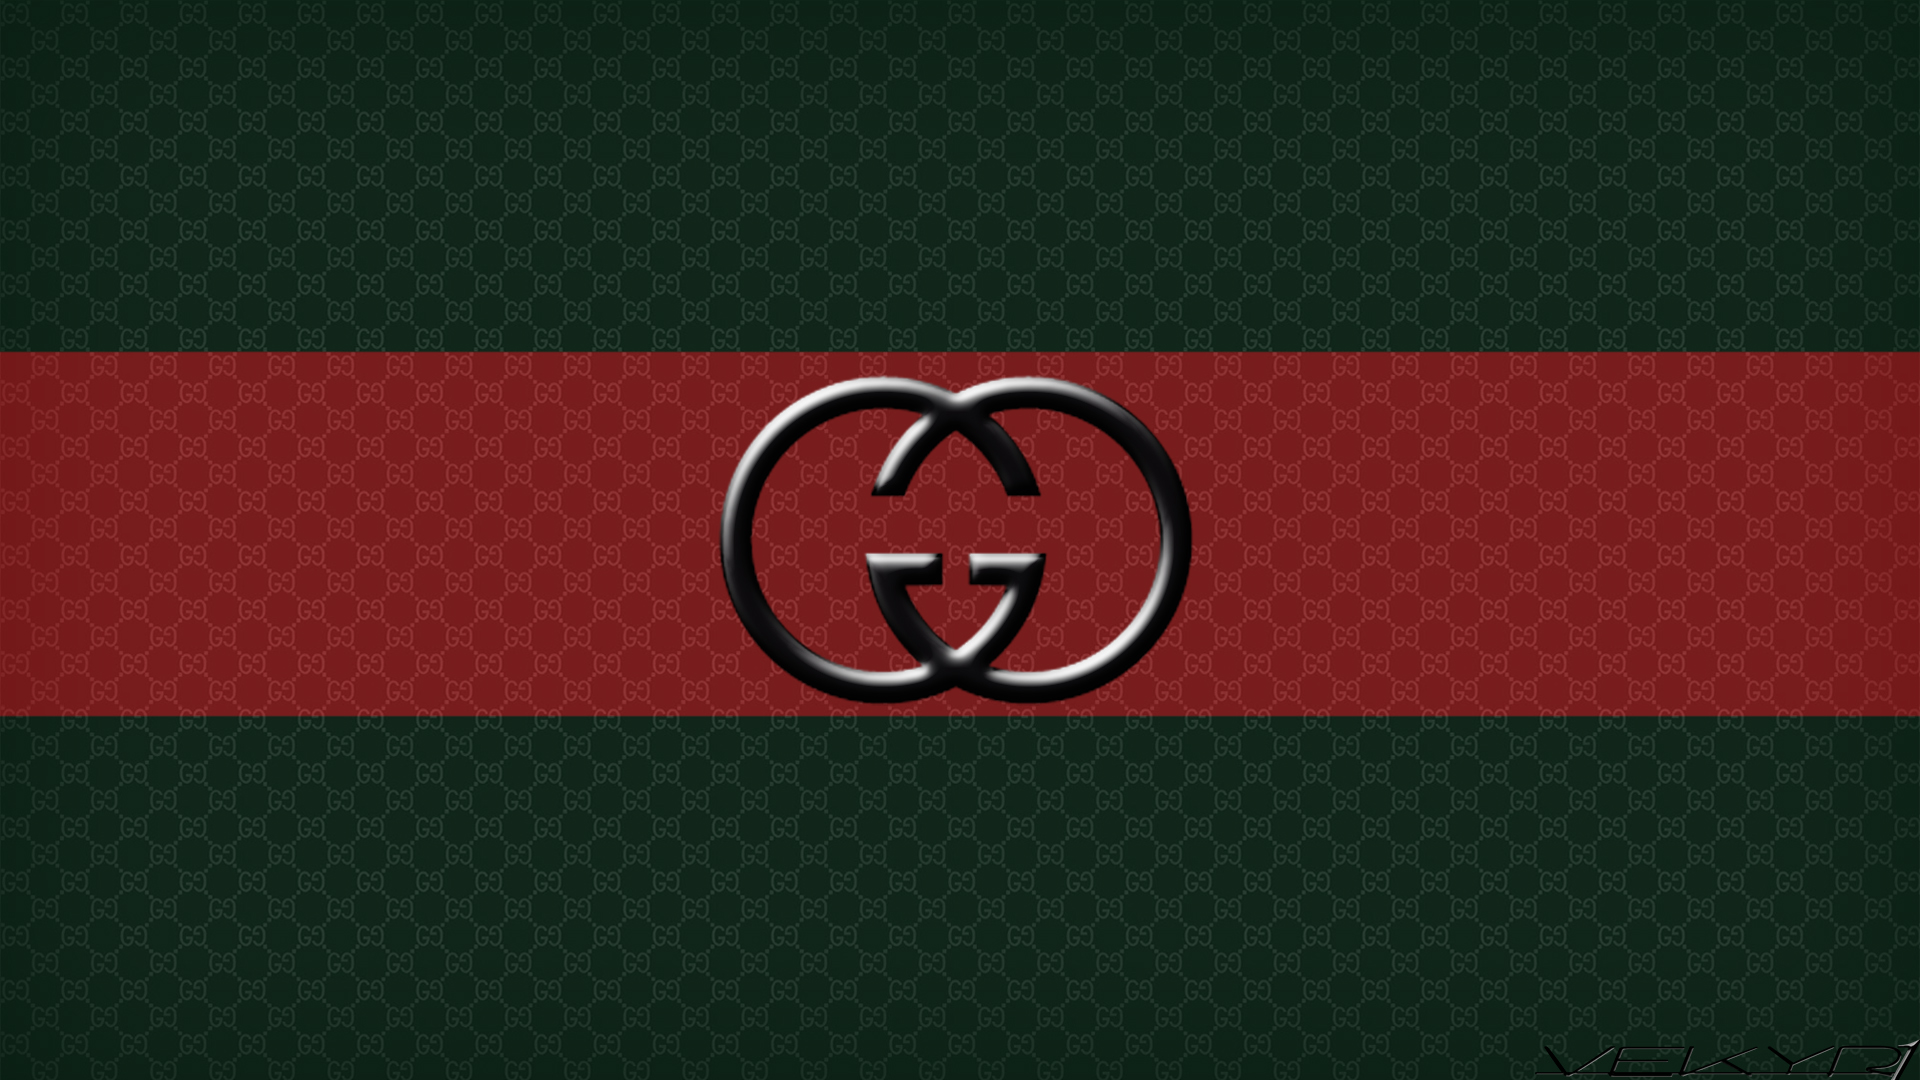 gucci wallpaper by vekyr1 customization wallpaper hdtv widescreen 2013 1920x1080